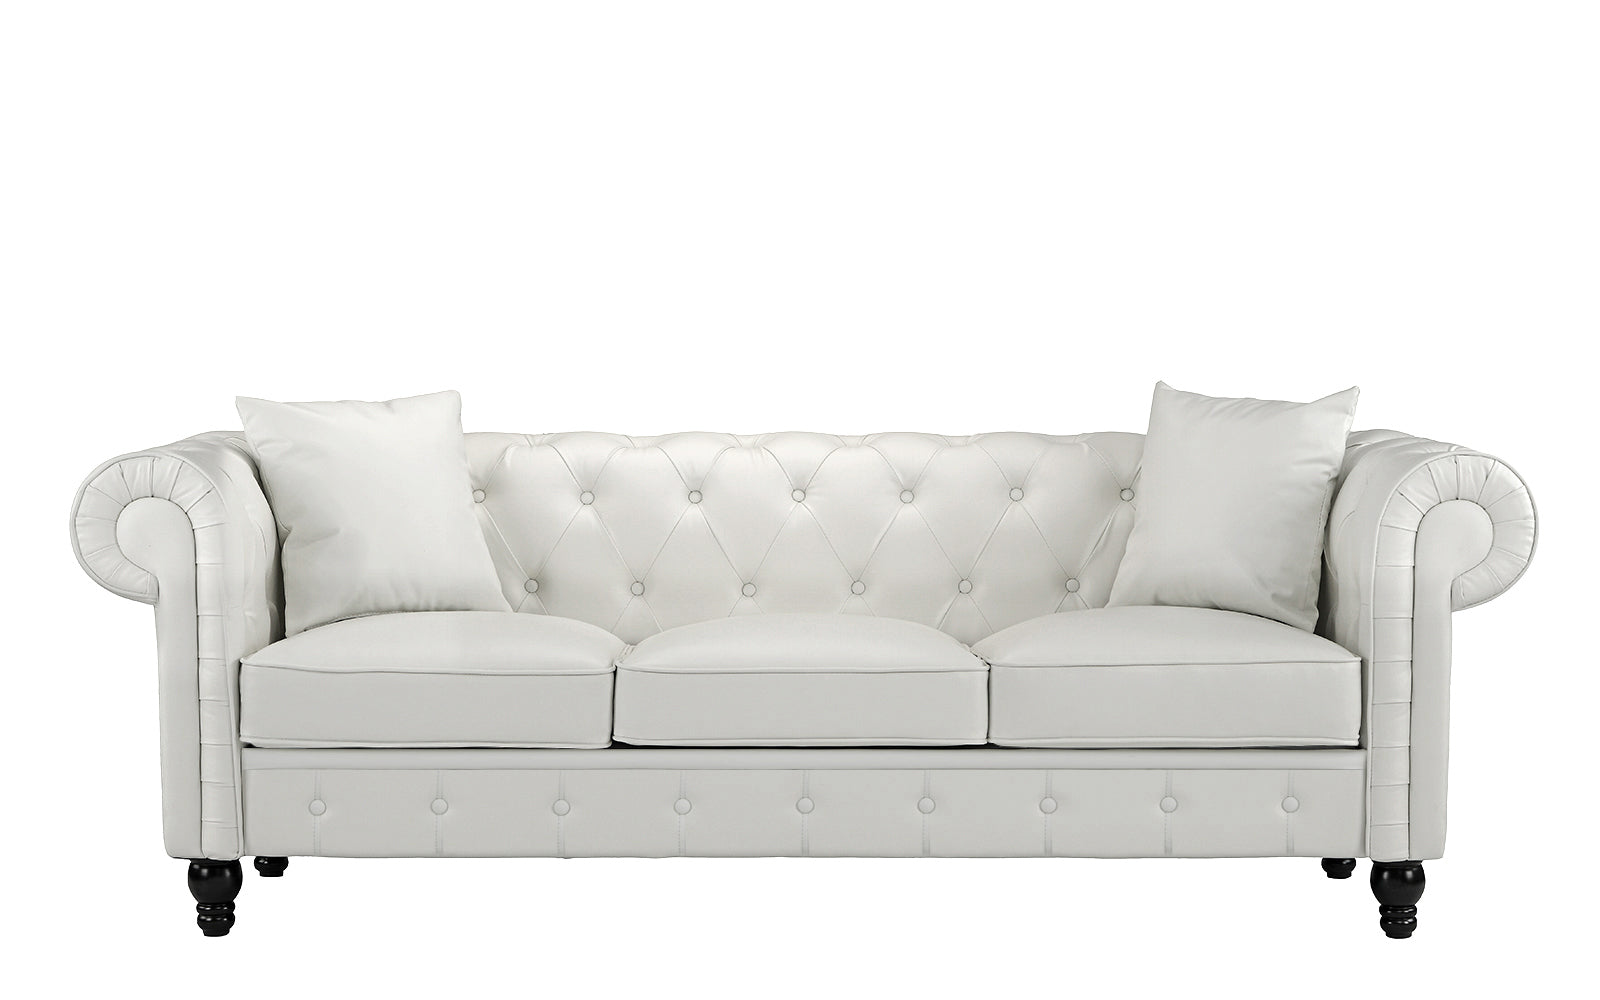 Bonded Leather Sofa Image